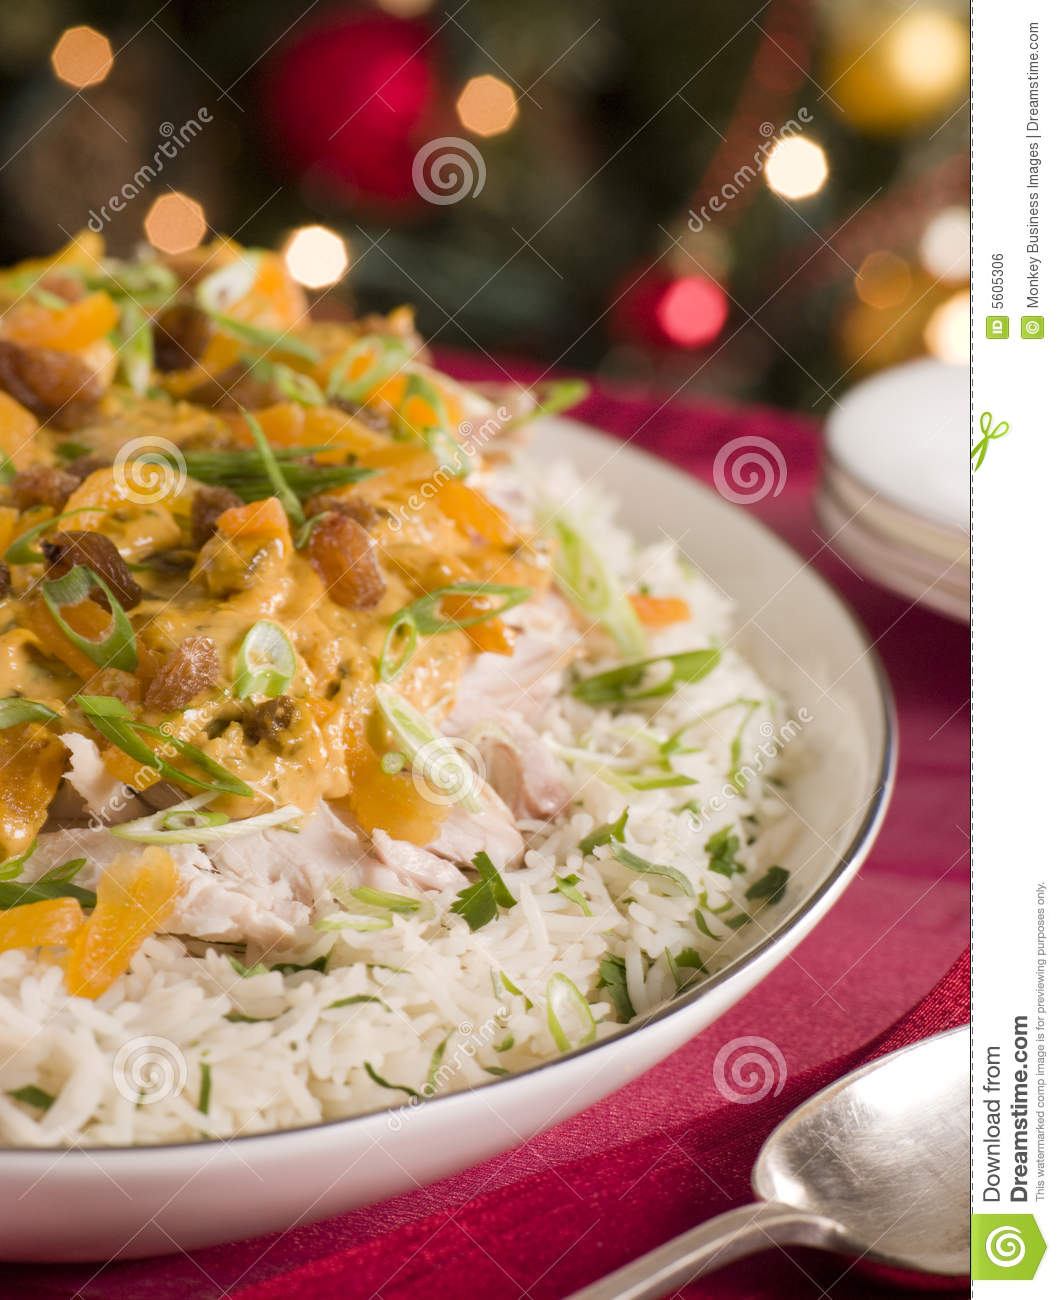 Coronation Turkey Rice Salad Royalty Free Stock Image - Image: 5605306